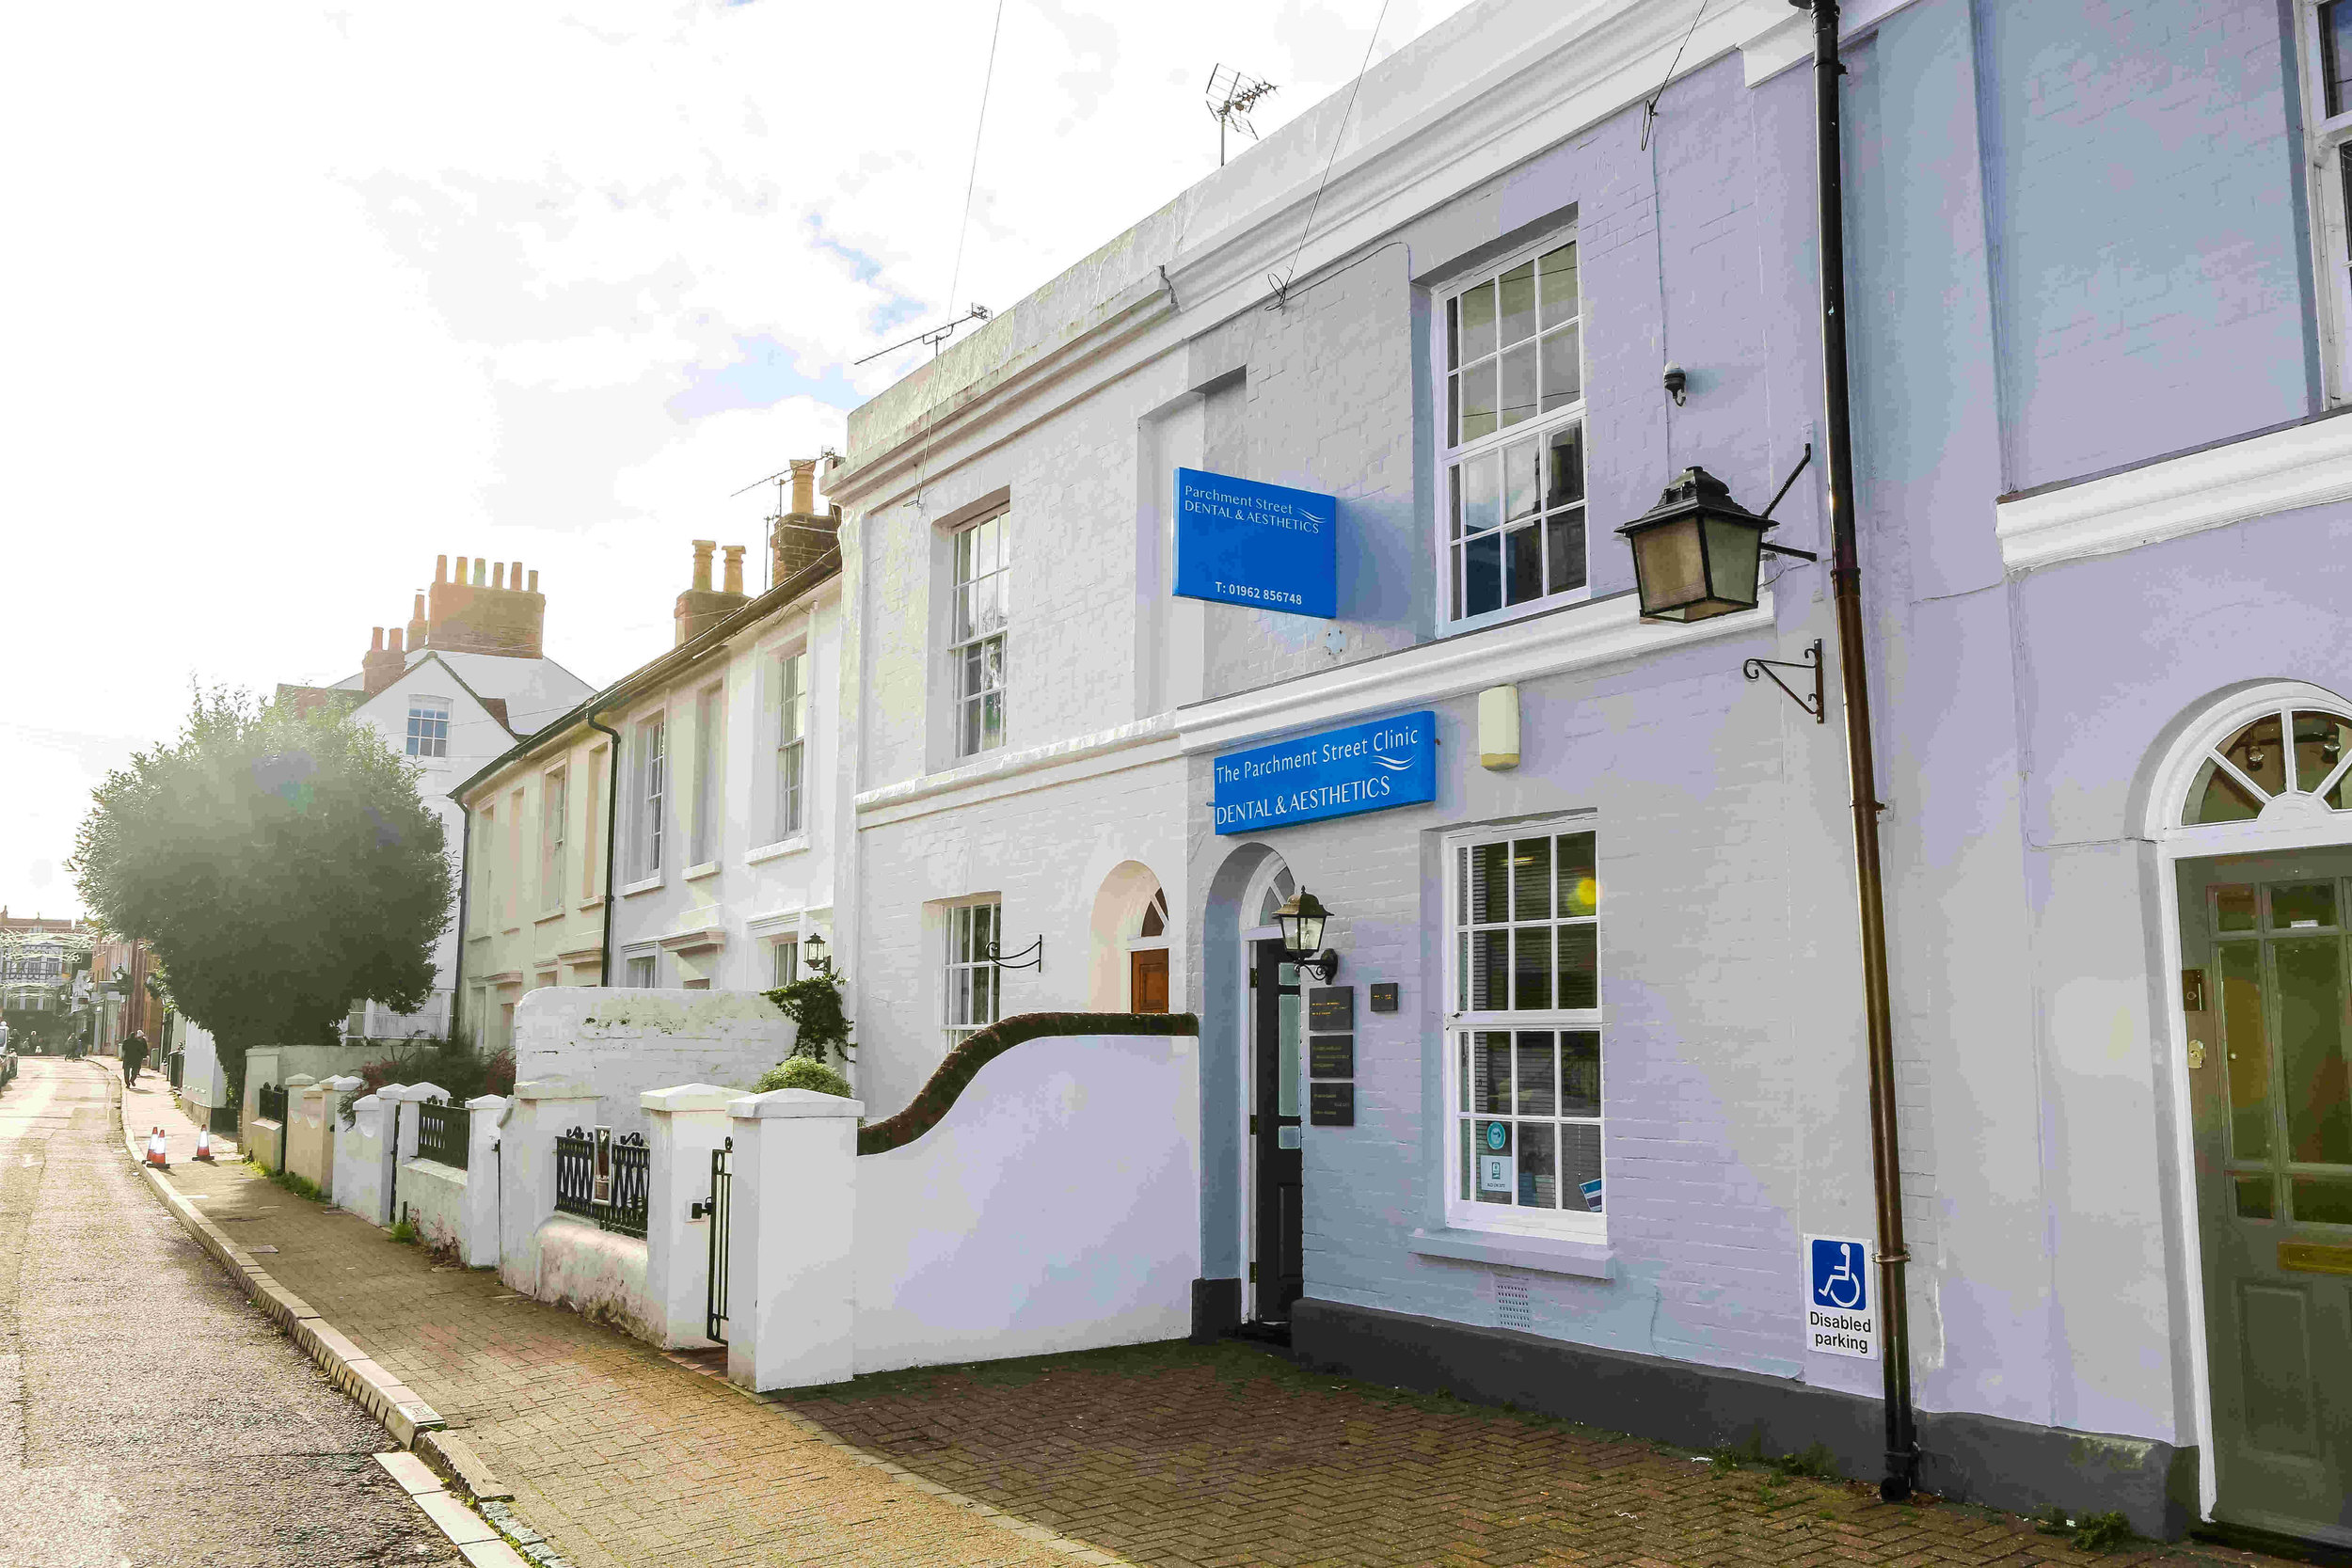 Winchester, Hampshire - If you are looking for a dentist who will look after you, the health of your teeth and gums and the appearance of your smile, Parchment Street Dental will be a welcome discovery.Our newly-opened Skin Aesthetics Clinic is welcoming new clients and for more information about all the available non-surgical cosmetic treatments.Parchment Street Dental23 Parchment Street, Winchester SO23 8AZ01962 856748www.parchmentstreet.co.ukThe Parchment Street Clinic22 Parchment Street, Winchester SO23 8AZ01962 863118www.theparchmentstreetclinic.co.ukGentle Dental and Aesthetics6B Parchment Street, Winchester SO23 8AT01962 863118www.gentledentalwinchester.co.uk